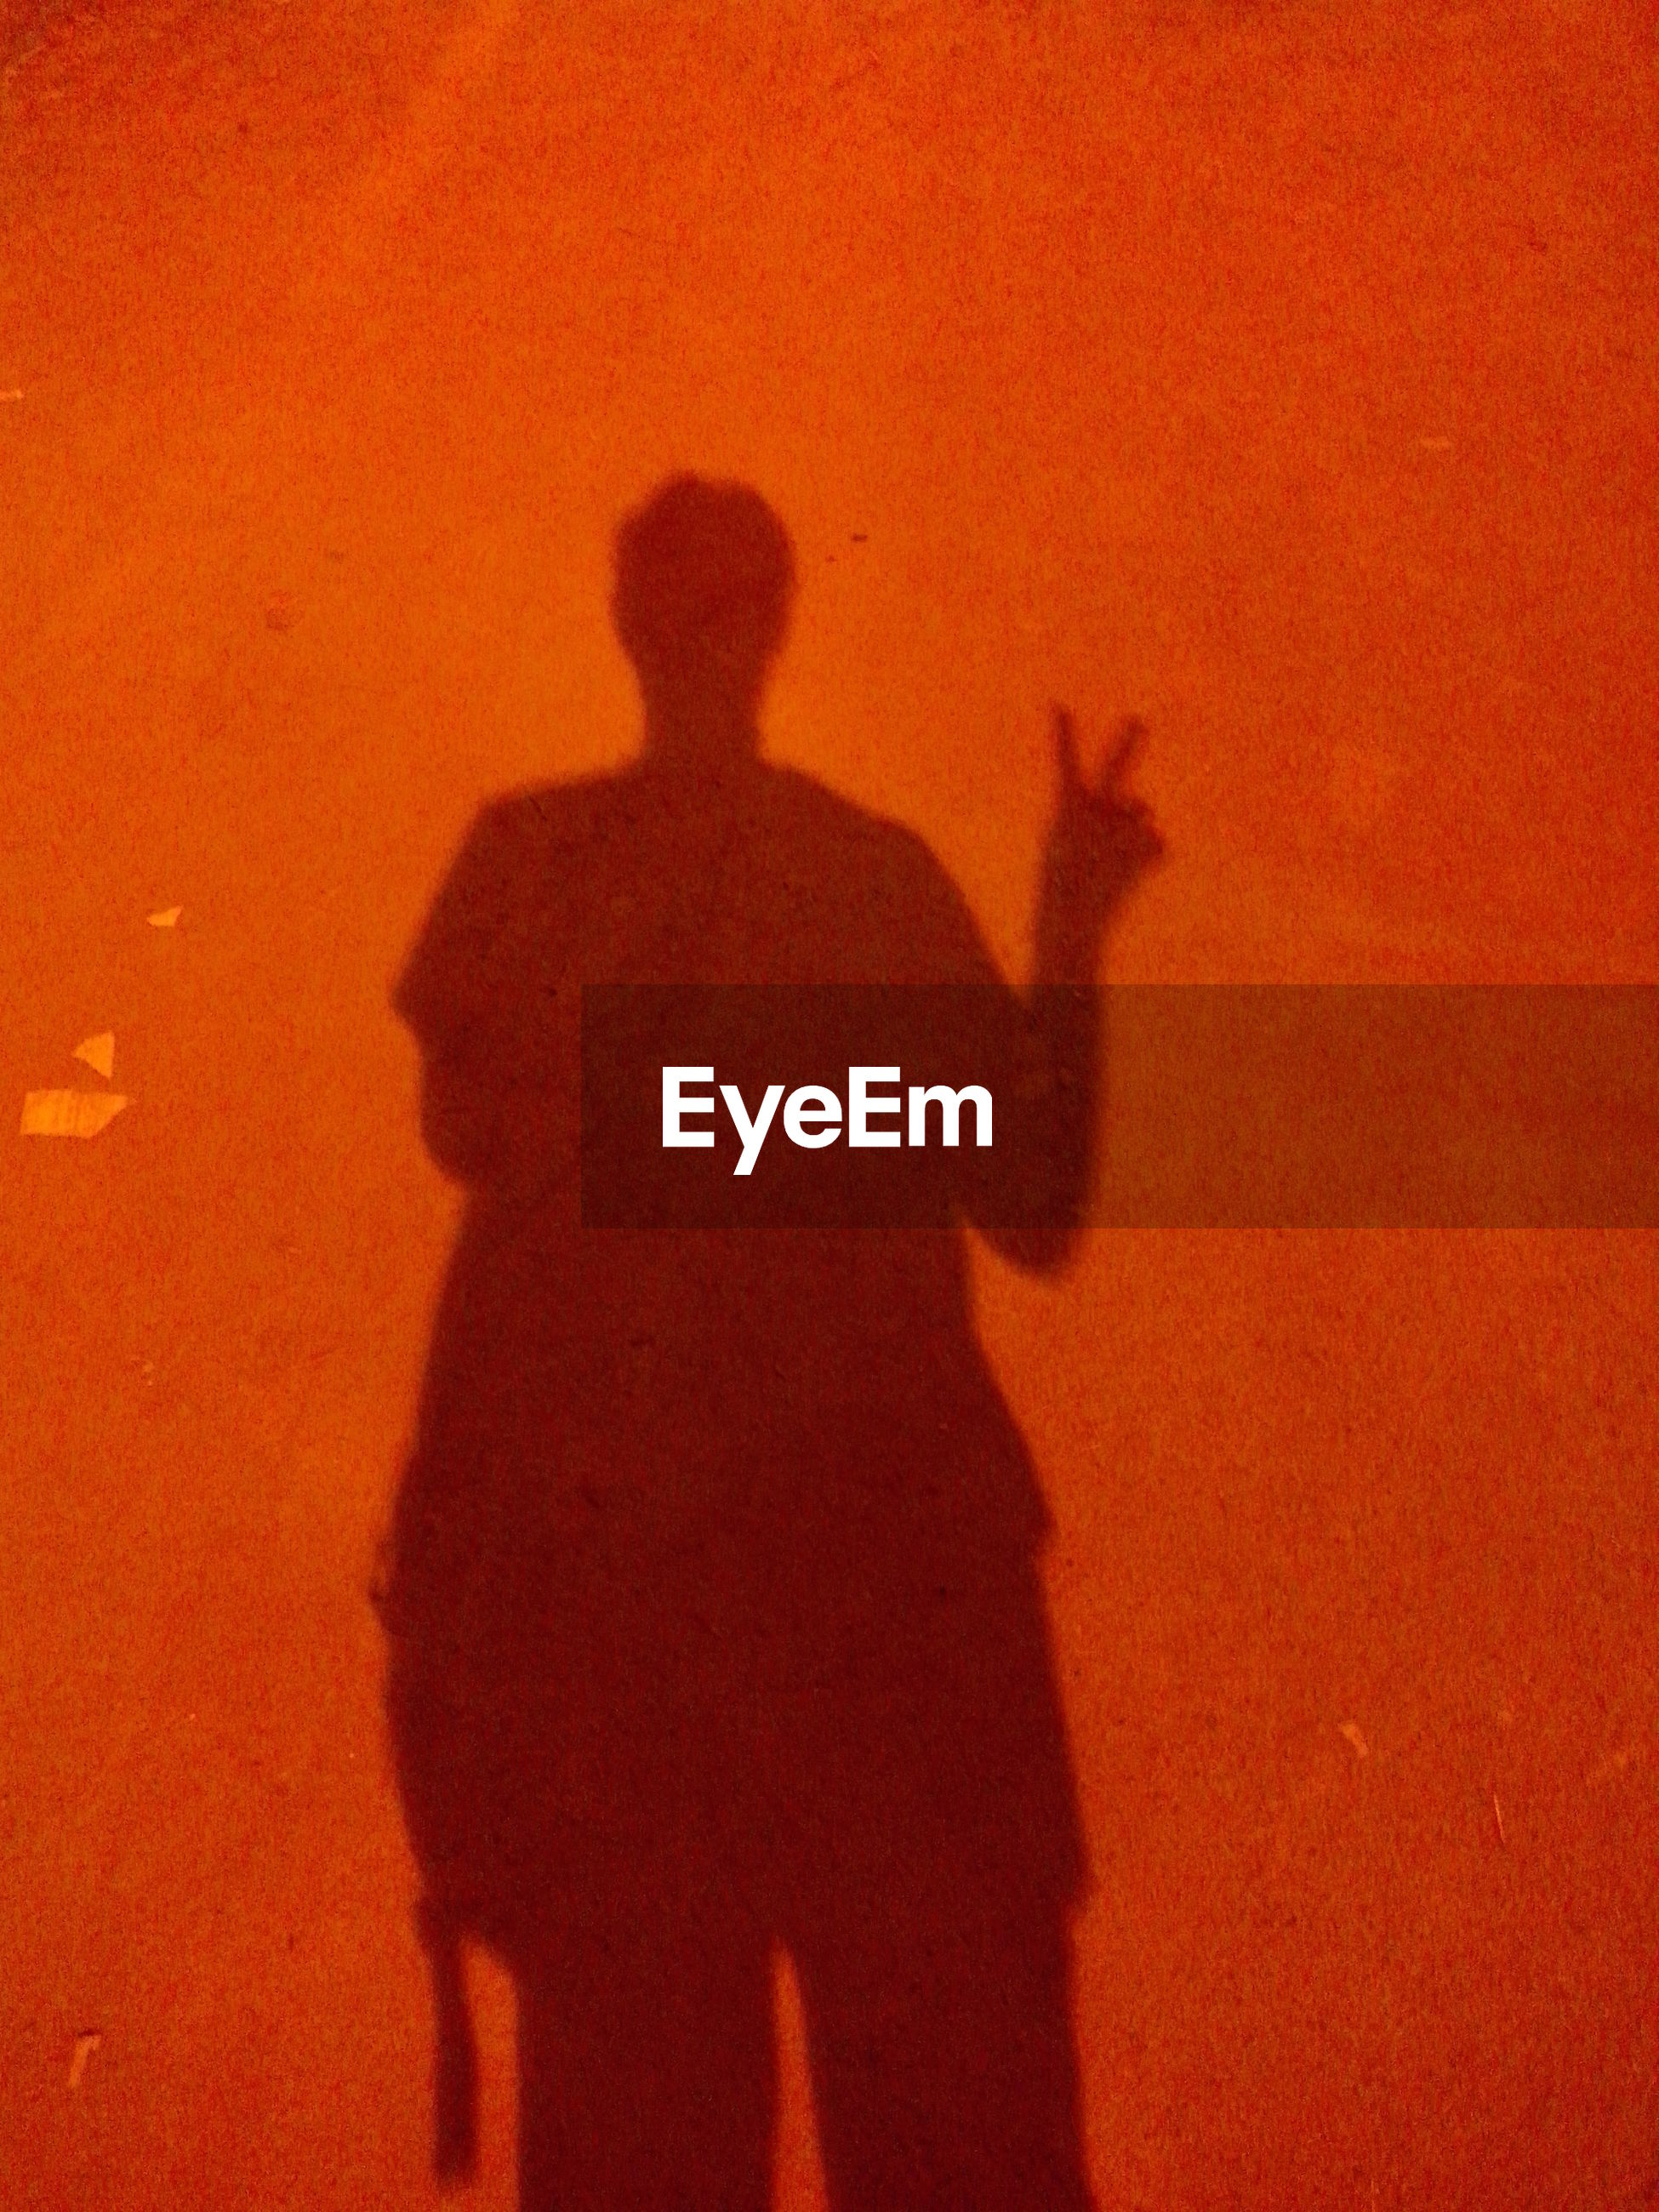 Man's shadow displaying victory sign